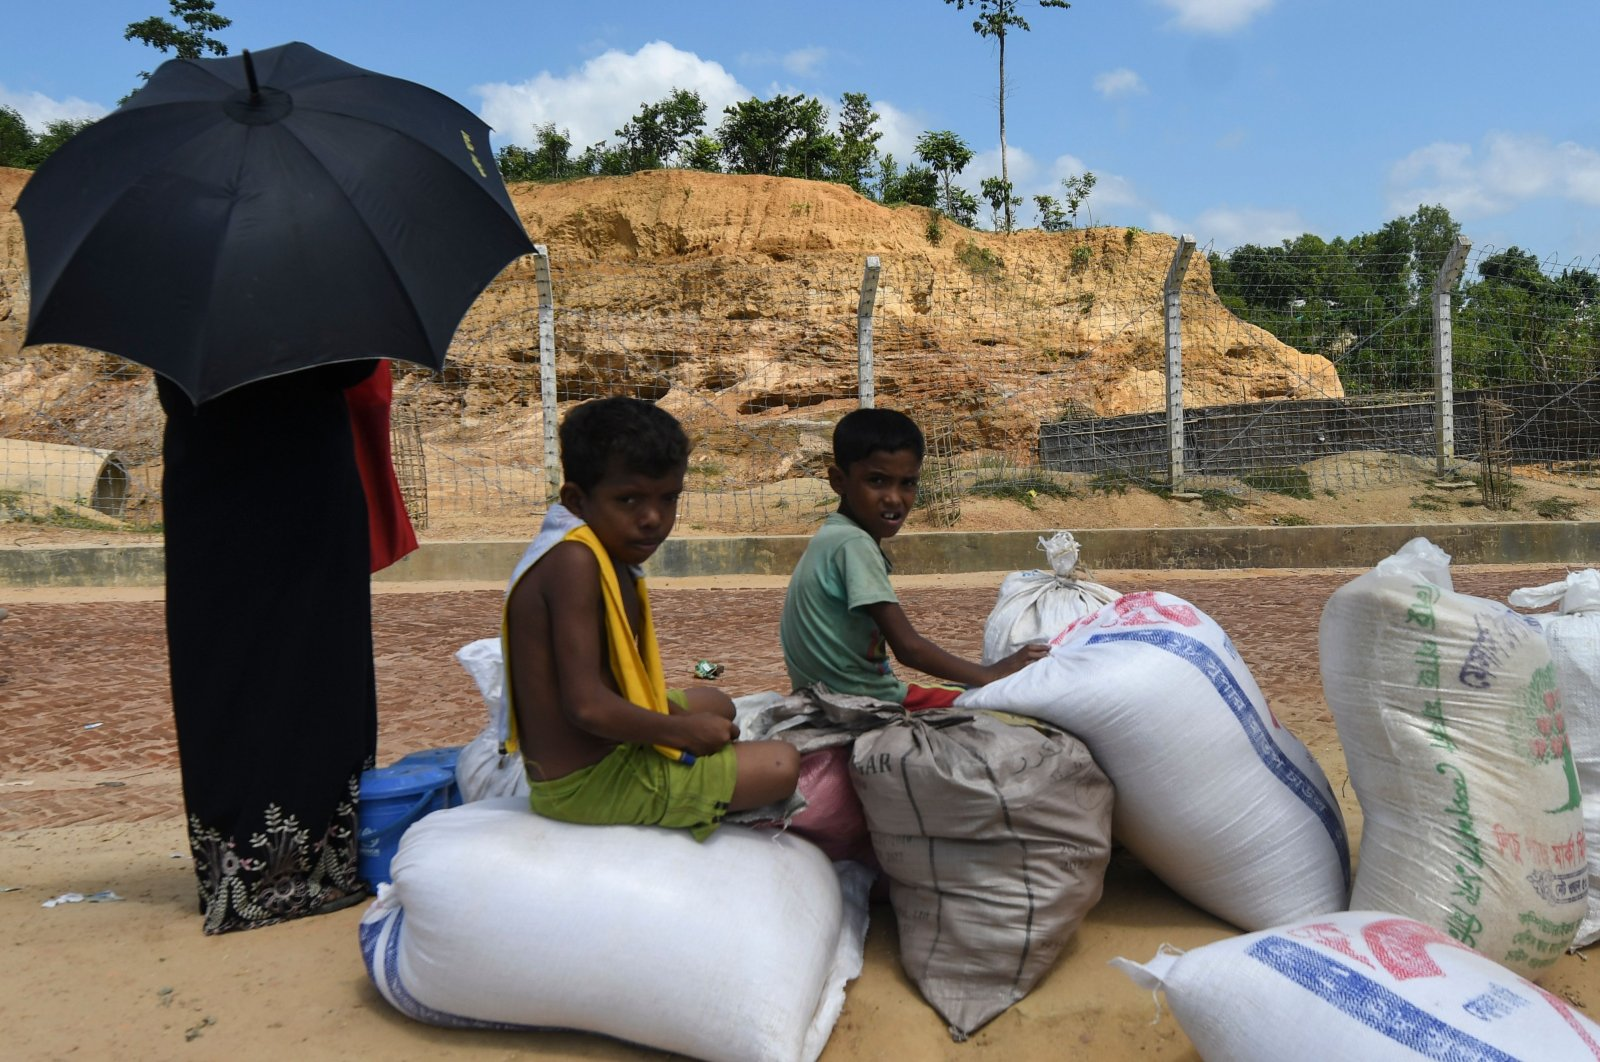 Rohingya refugee children sit on relief supplies at Kutupalong refugee camp in Ukhia, Bangladesh, Oct. 15, 2020. (AFP Photo)